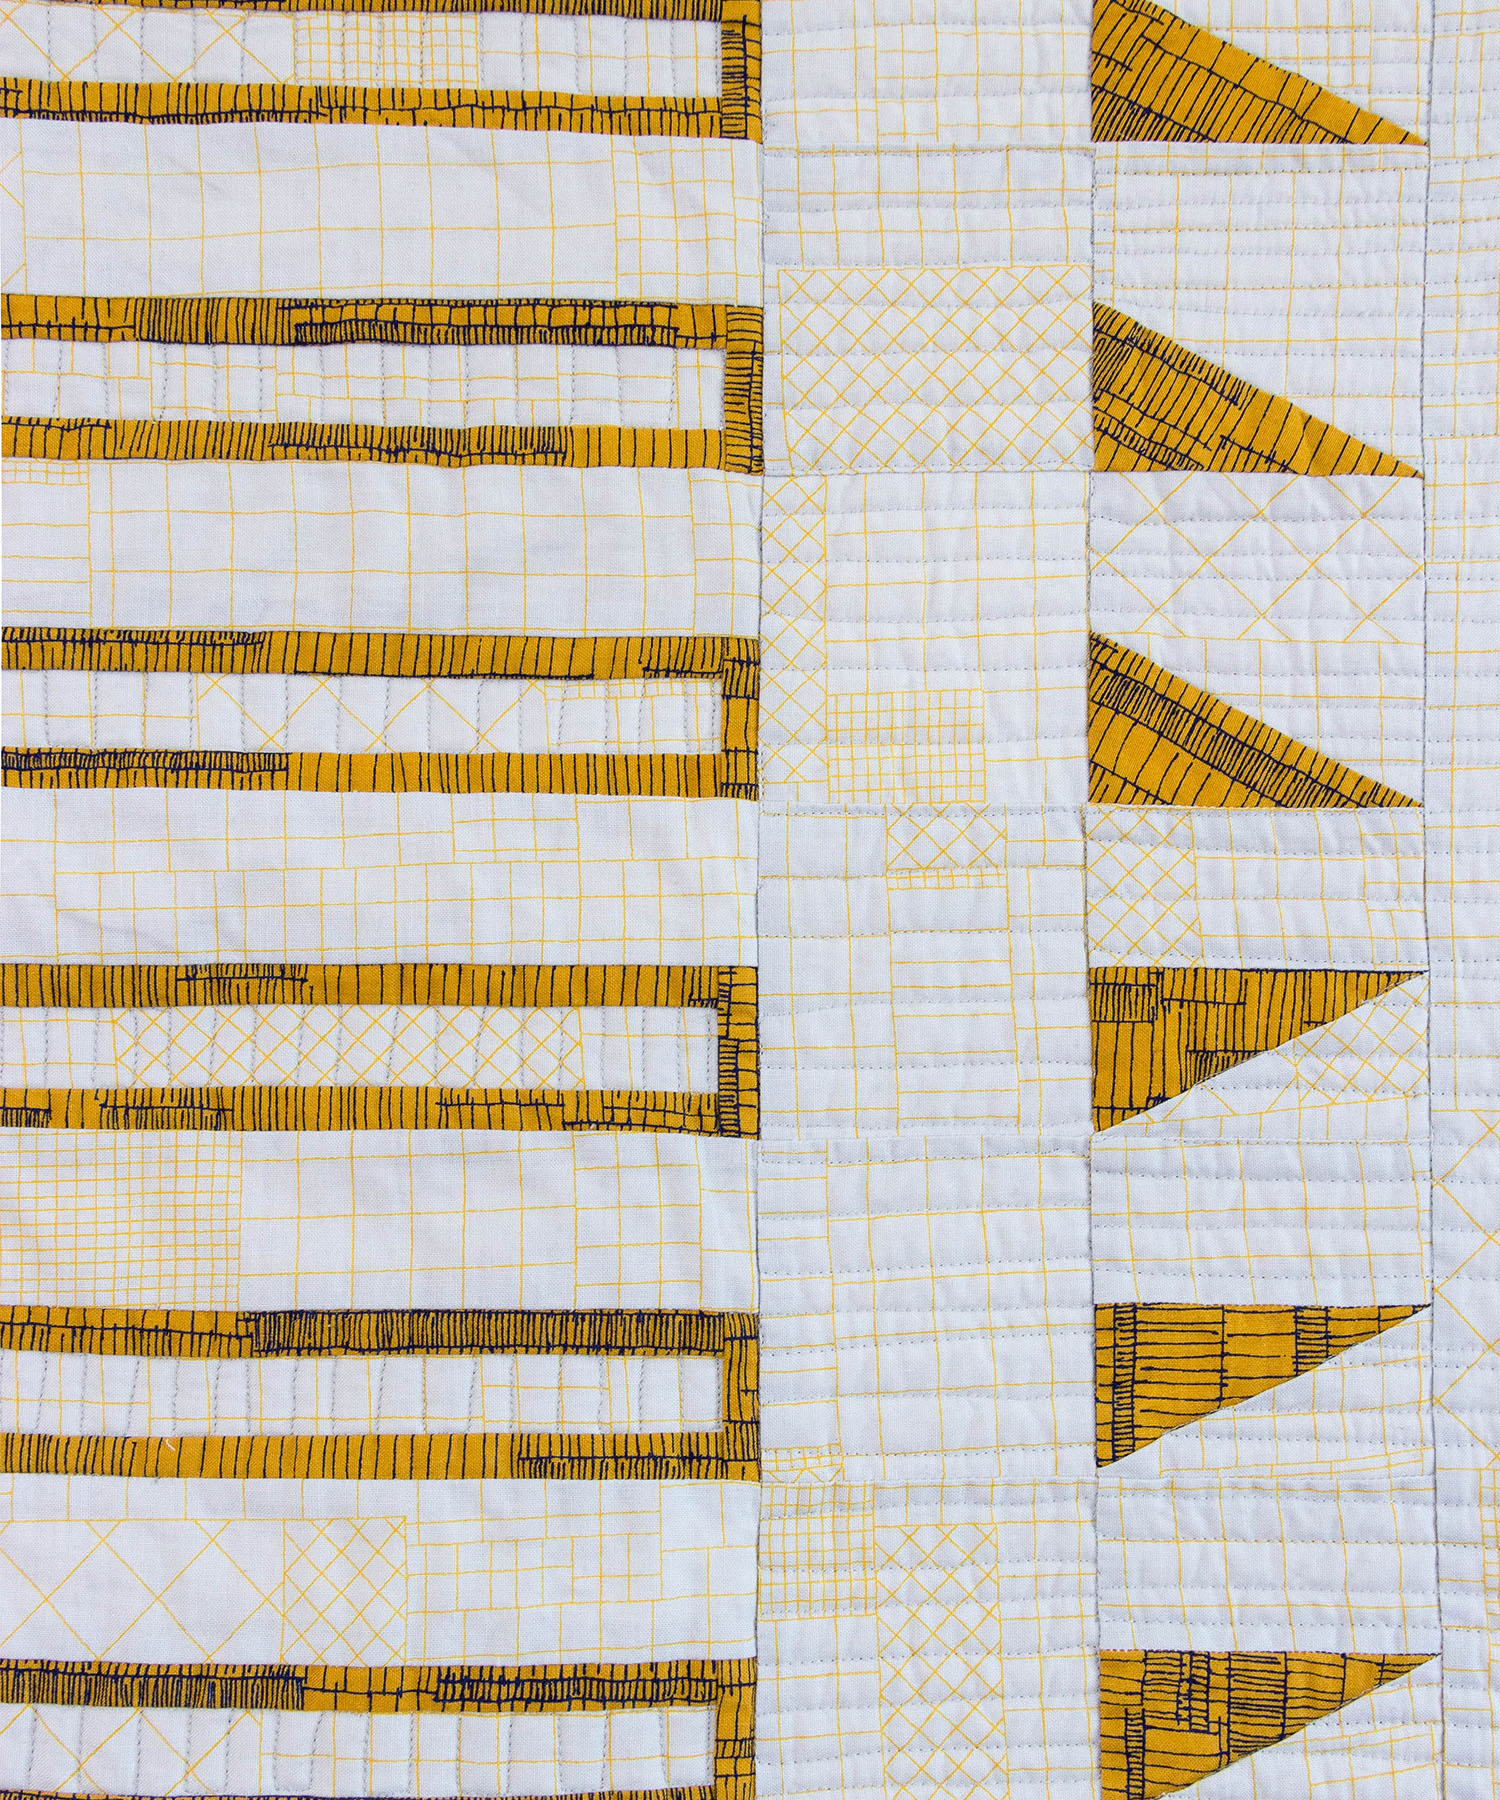 blind quilt detail by nancy purvis.jpg